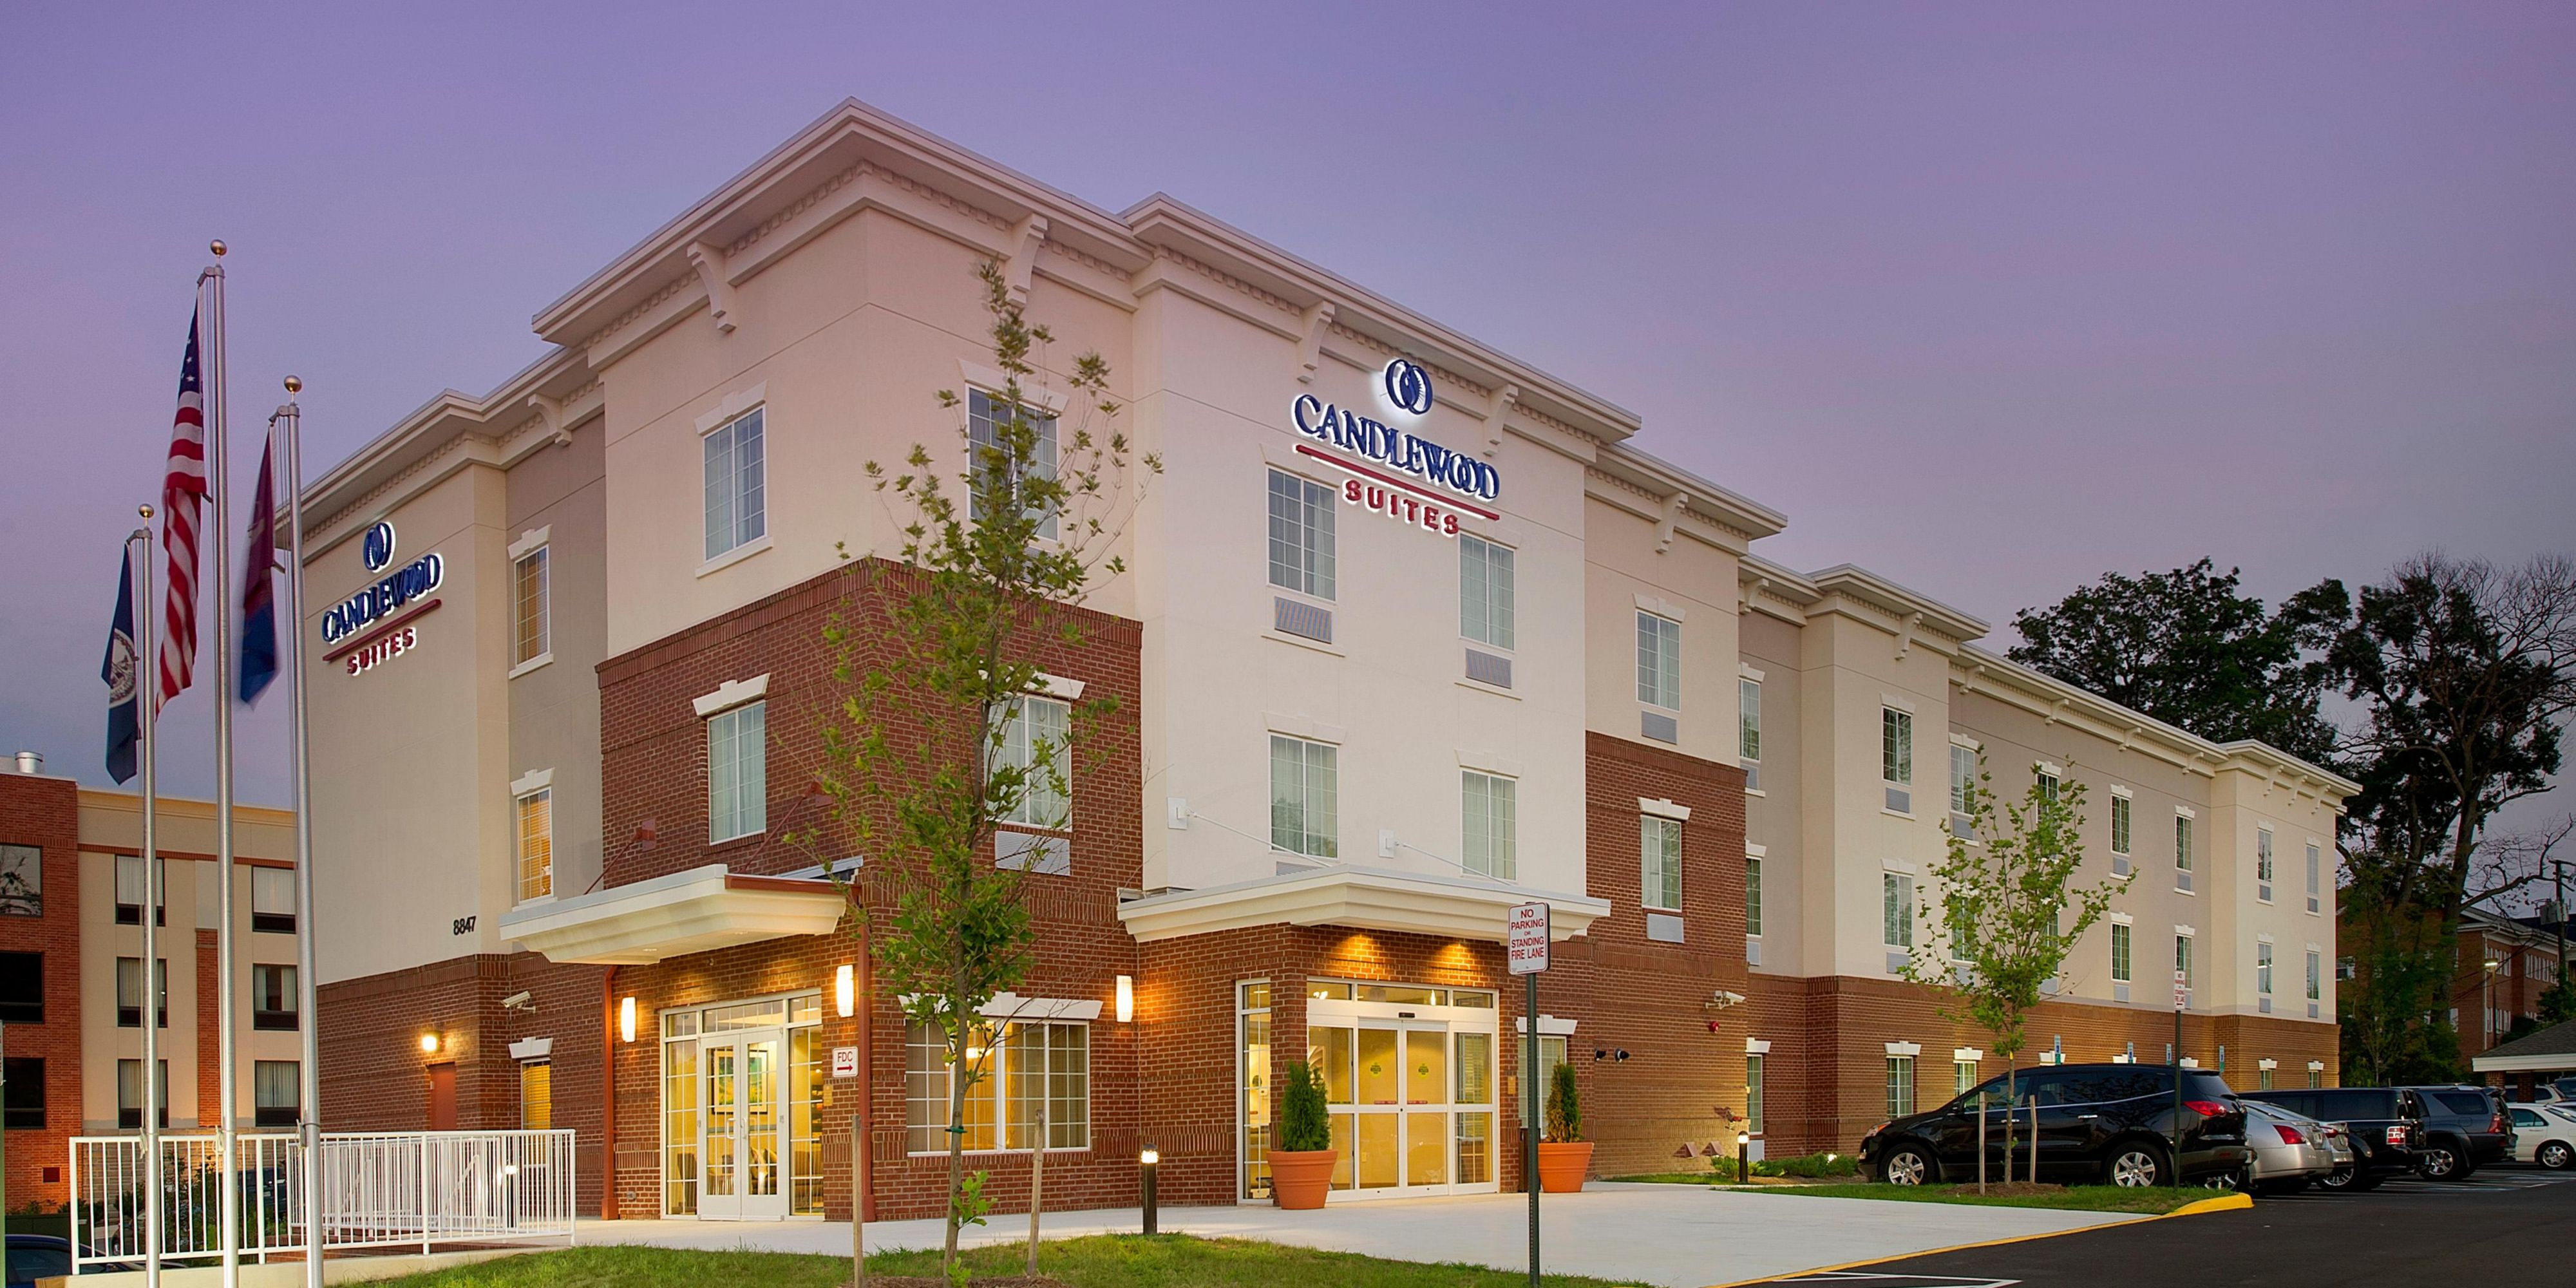 Alexandria hotels candlewood suites alexandria fort belvoir candlewood suites alexandria fort belvoir solutioingenieria Image collections